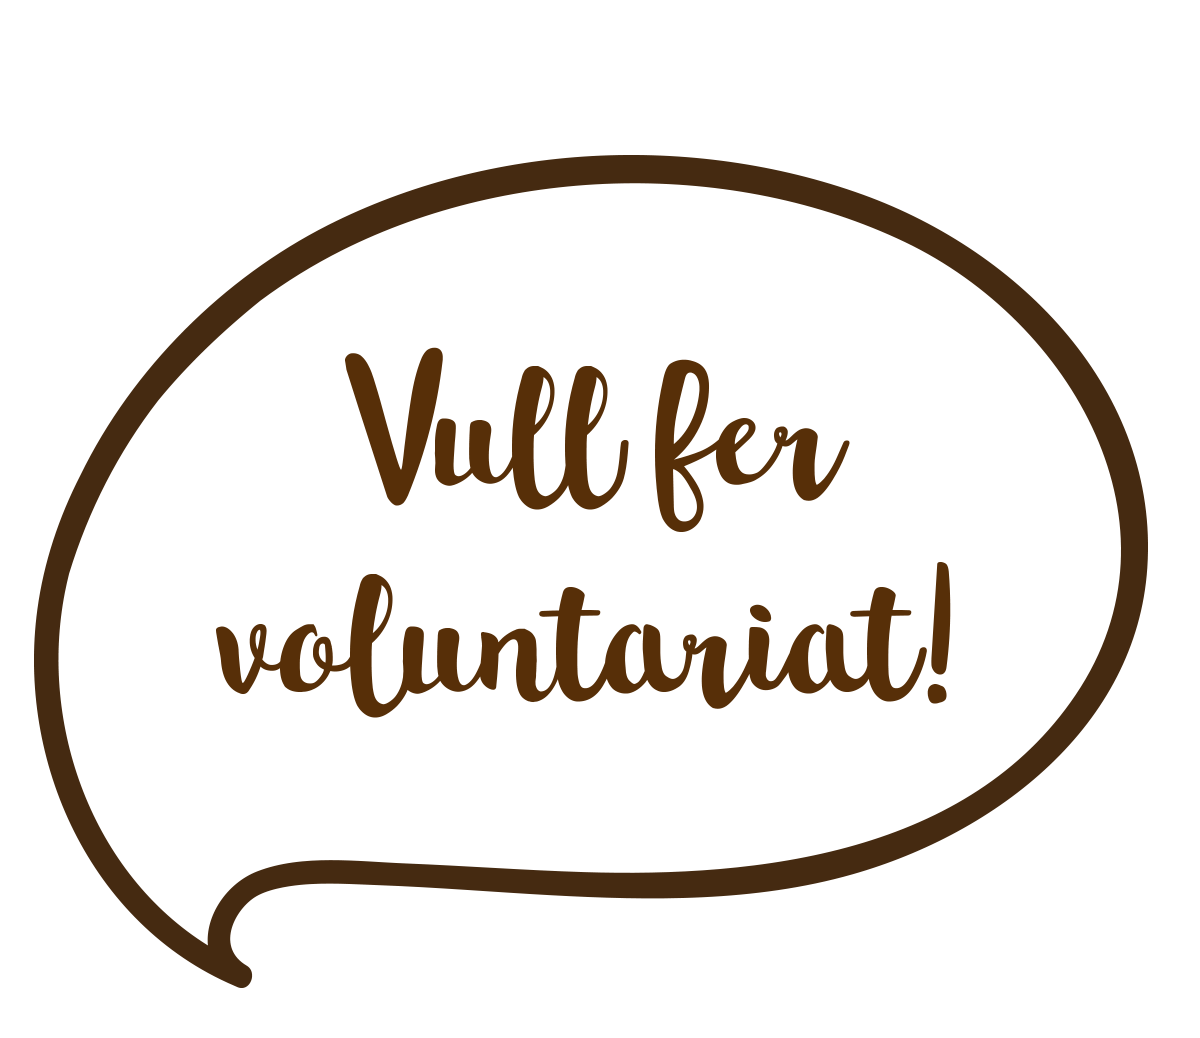 Col·labora_Voluntariat